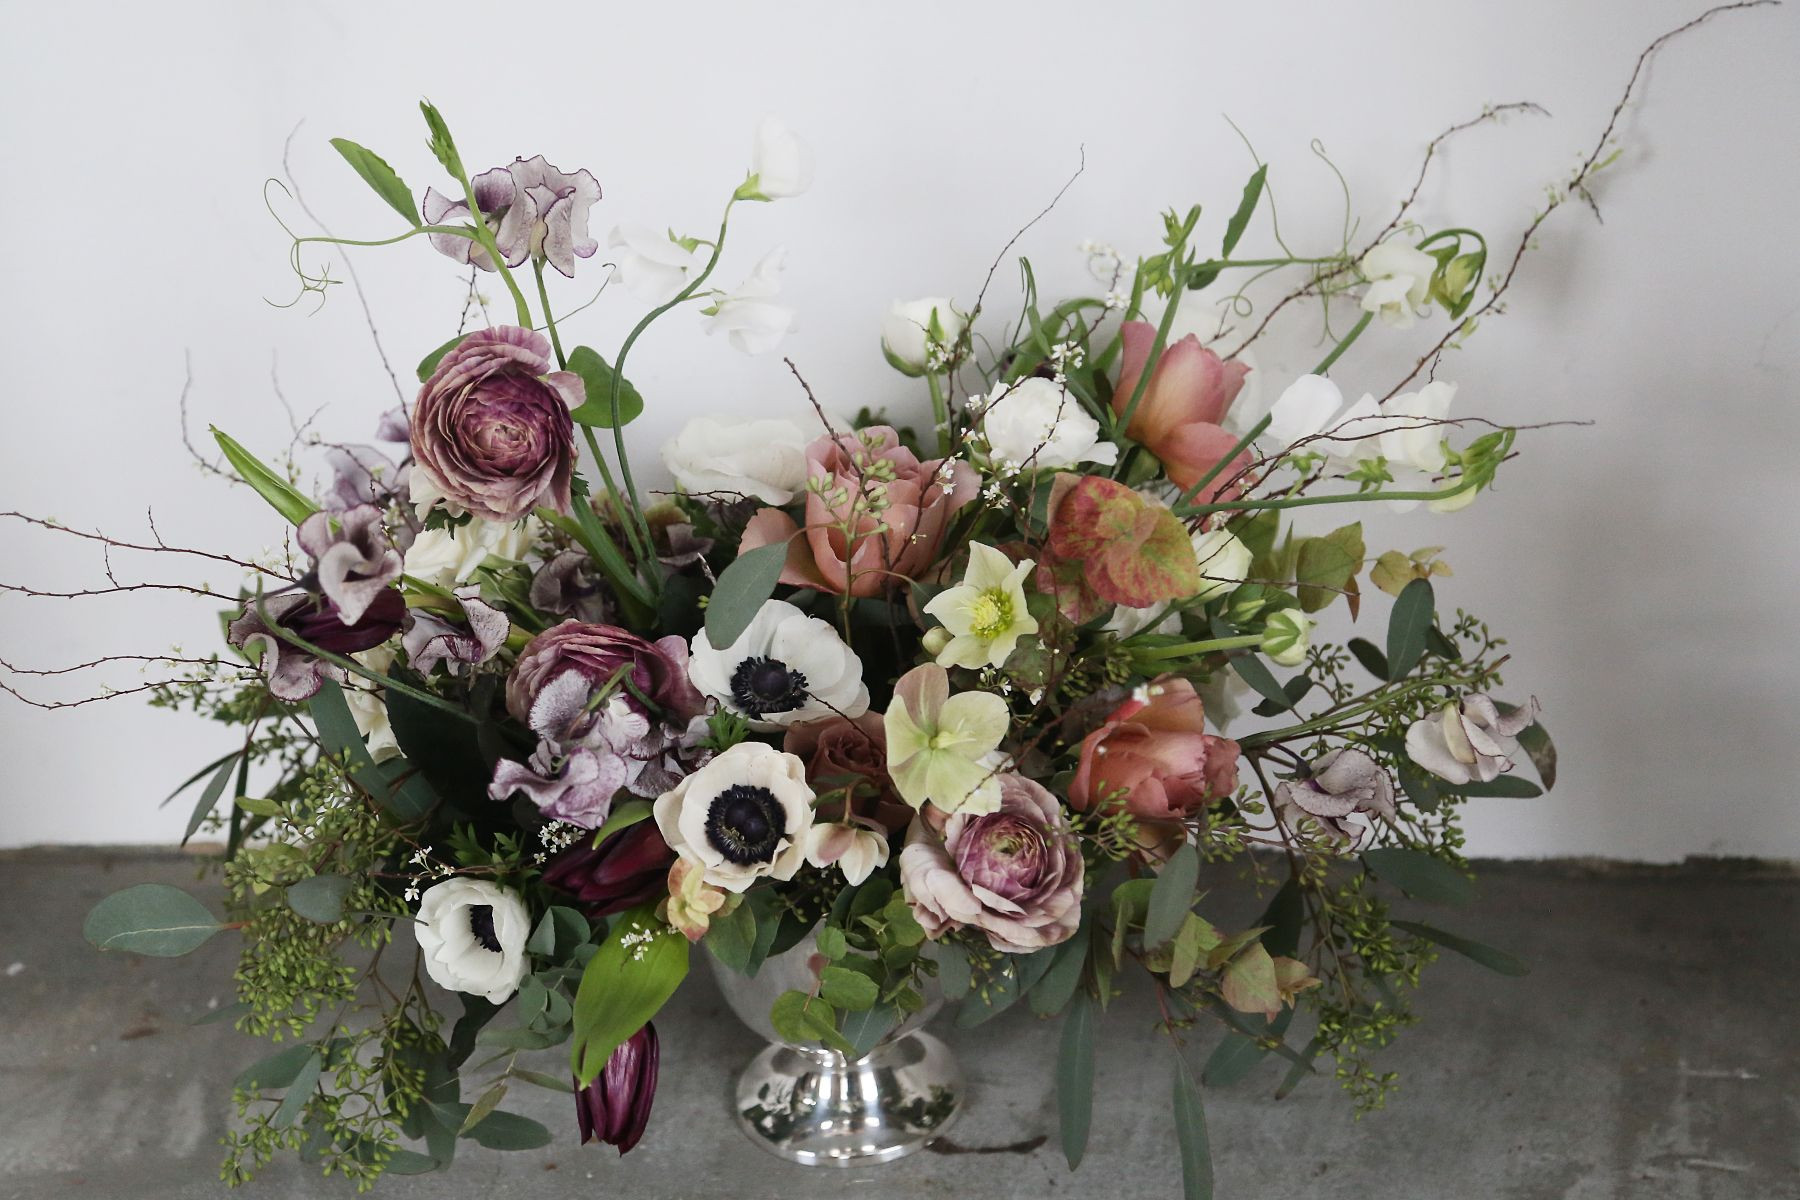 Putnam & Putnam Floral Design Based in NYC